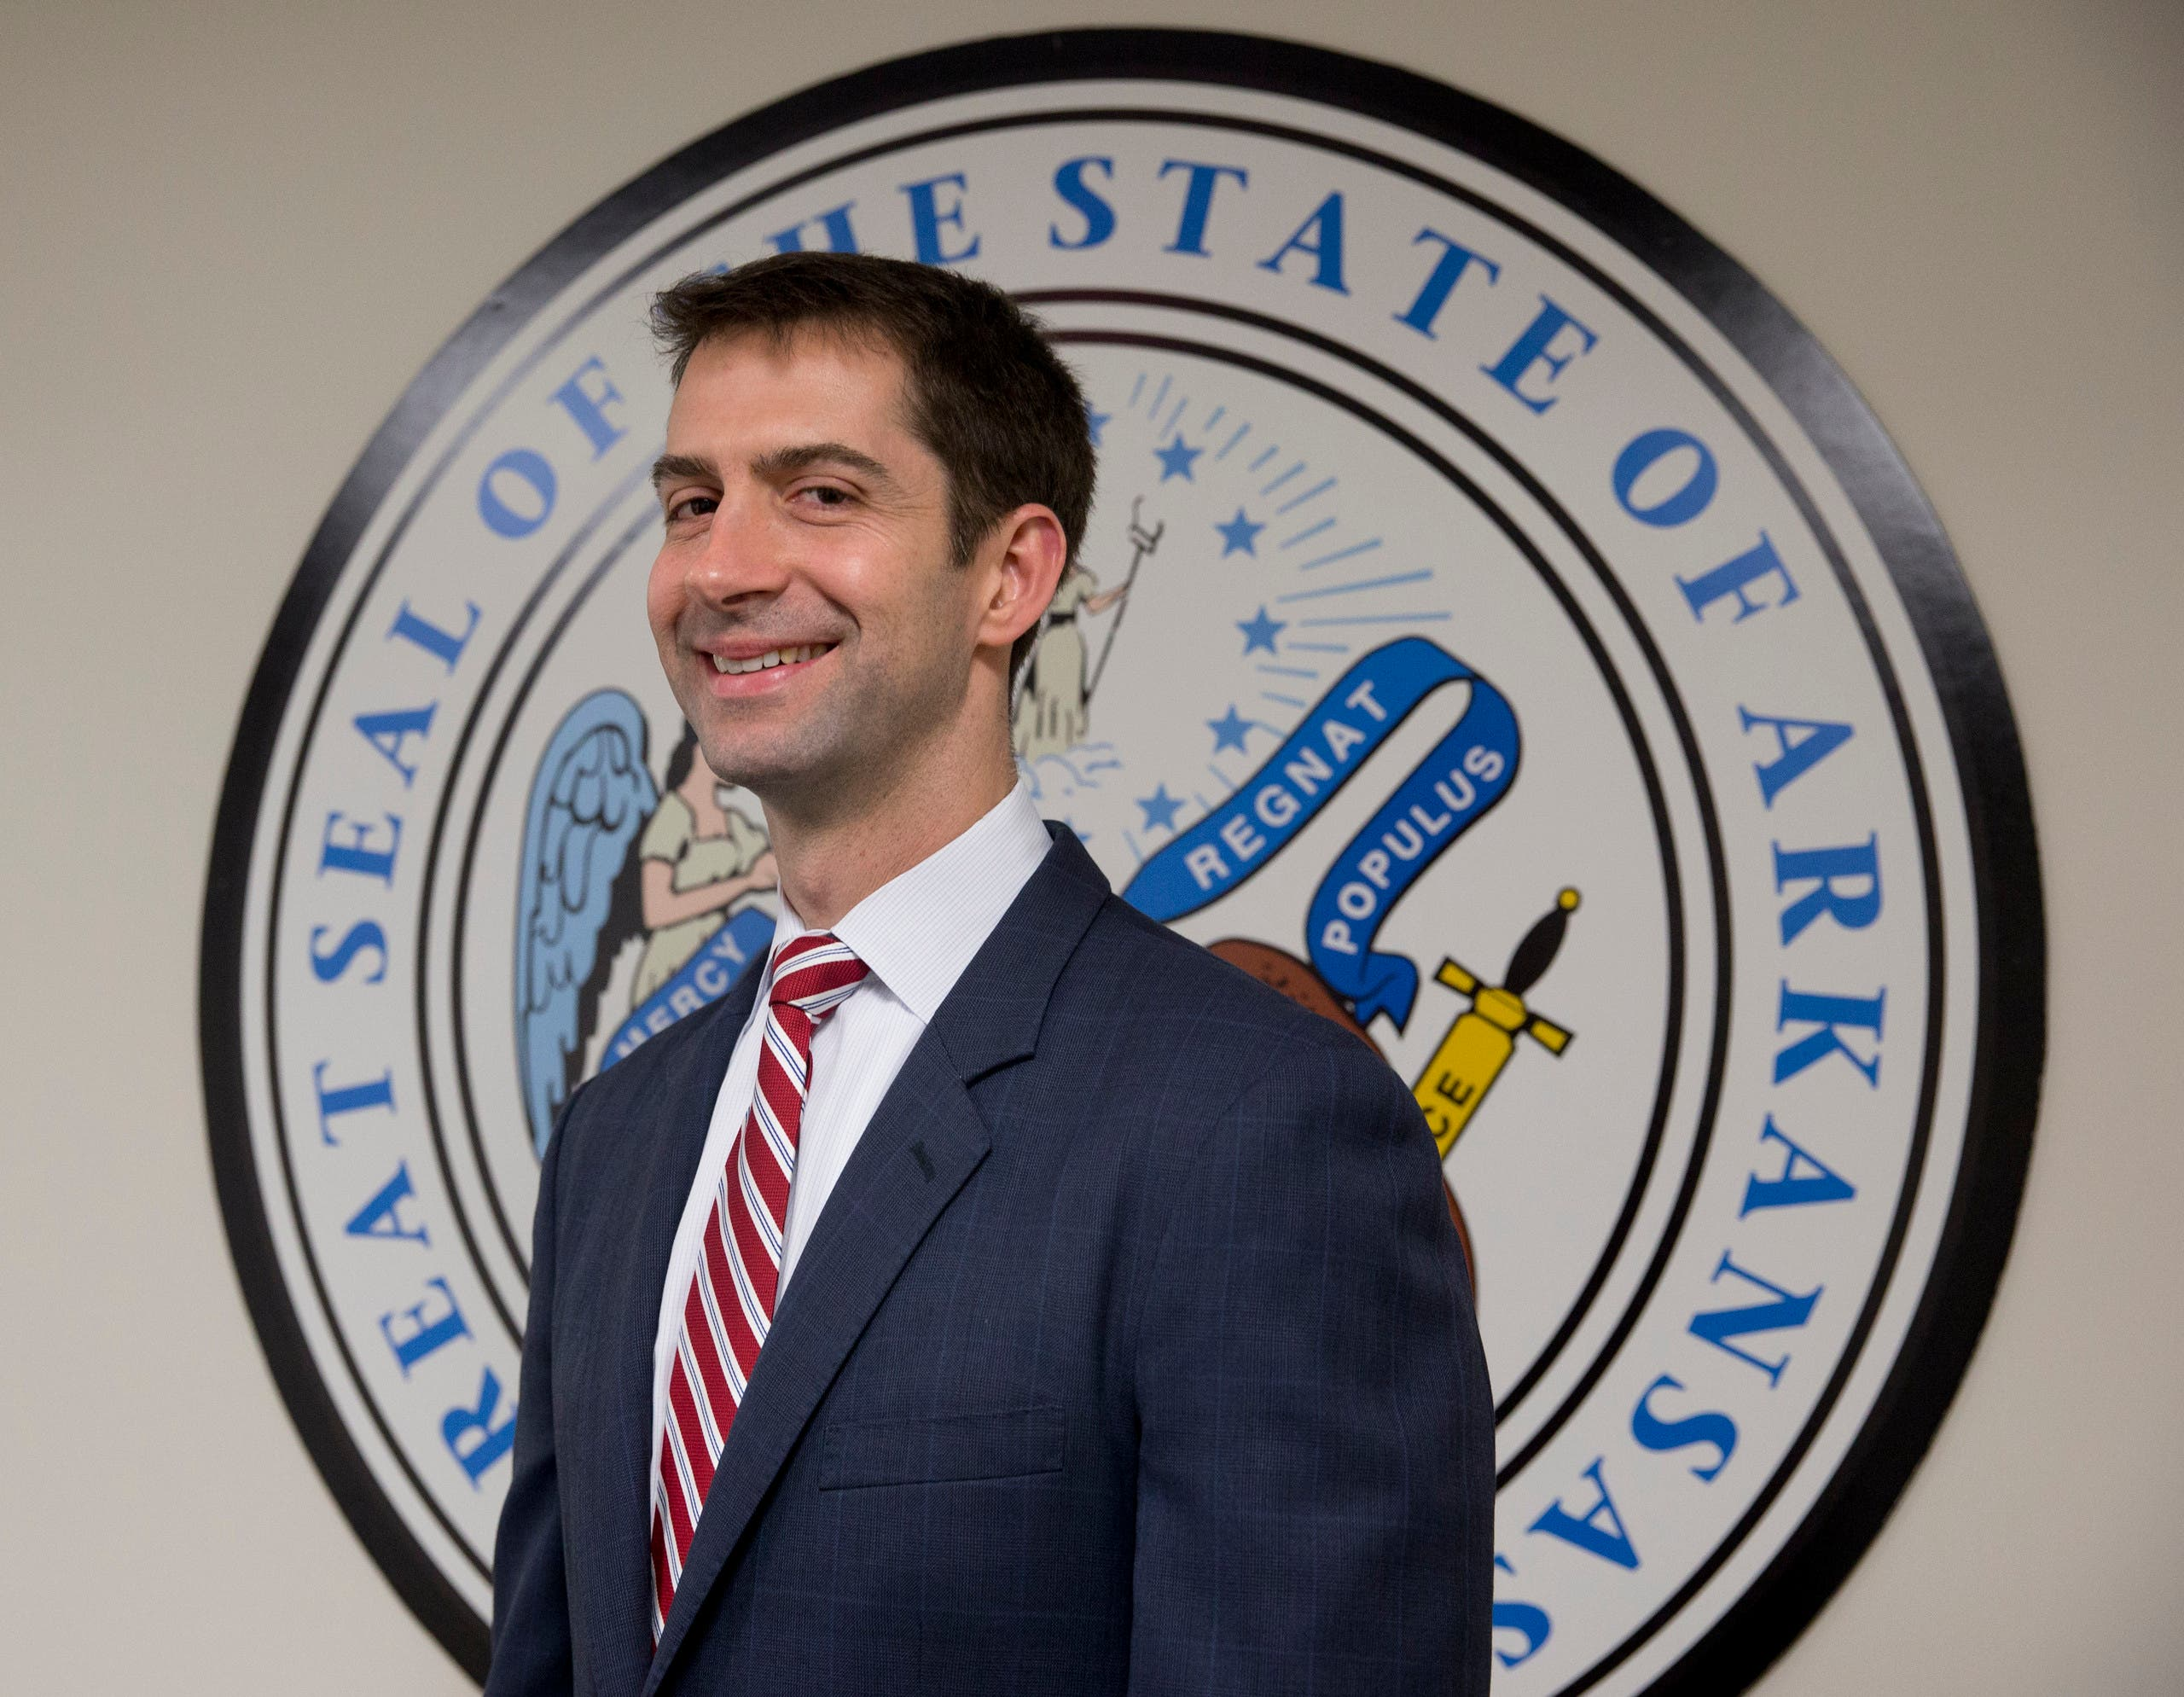 Prince Mohammed also met on Wednesday with Tom Cotton (pictured), a Republican senator from Arkansas. (AP)